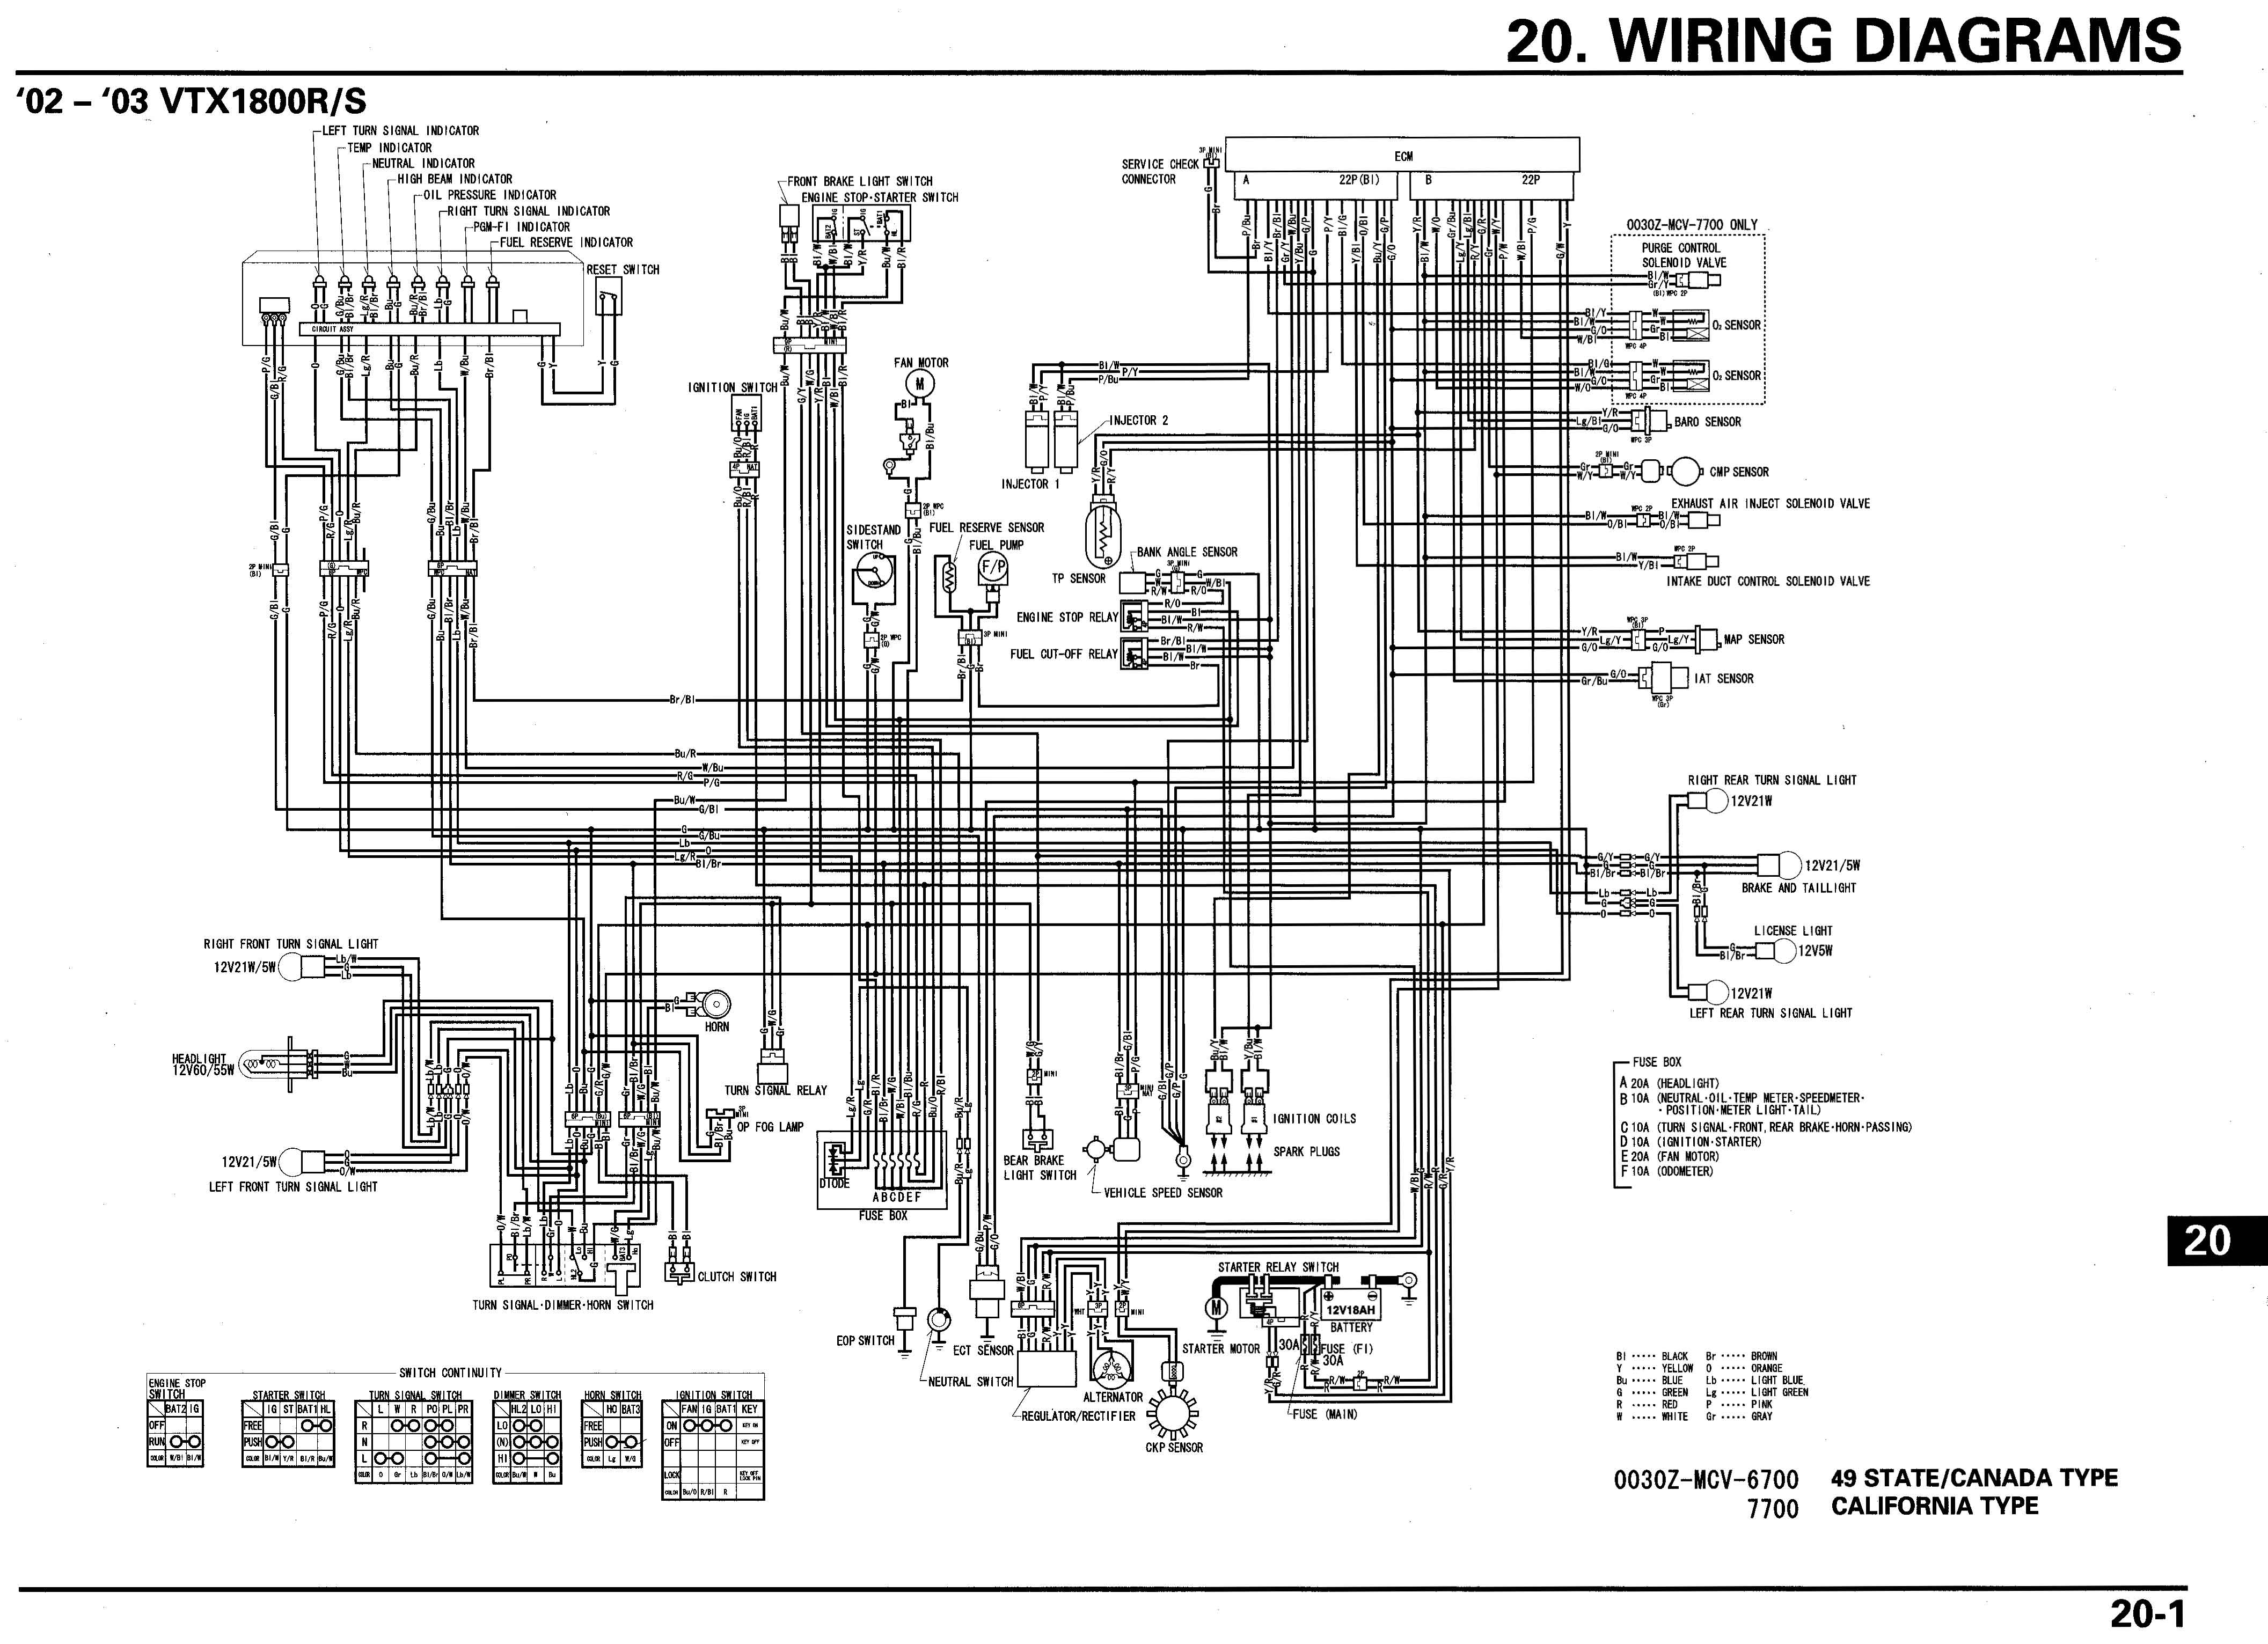 motorcycle wire schematics bareass choppers motorcycle tech pages rh tech bareasschoppers com 2006 honda vtx 1800 wiring diagram 2006 honda vtx 1800 wiring diagram